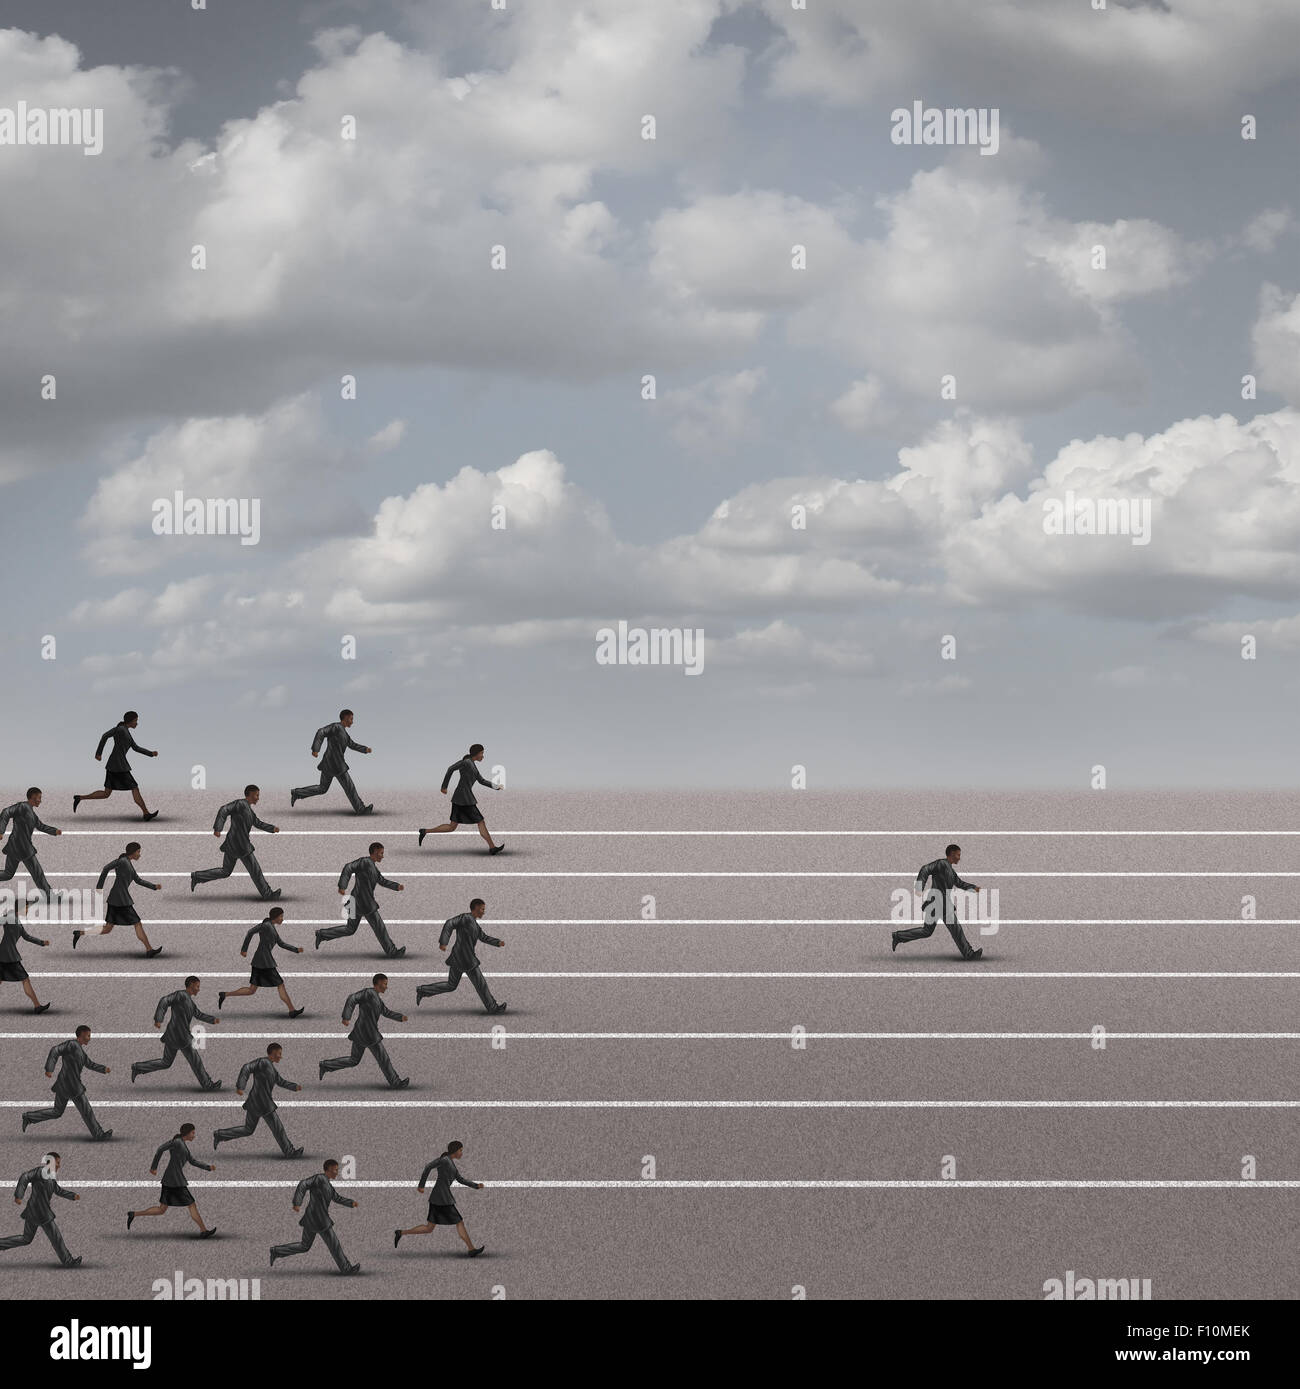 Winning the race business concept as a group of businesspeople running together with an individual businessman breaking - Stock Image